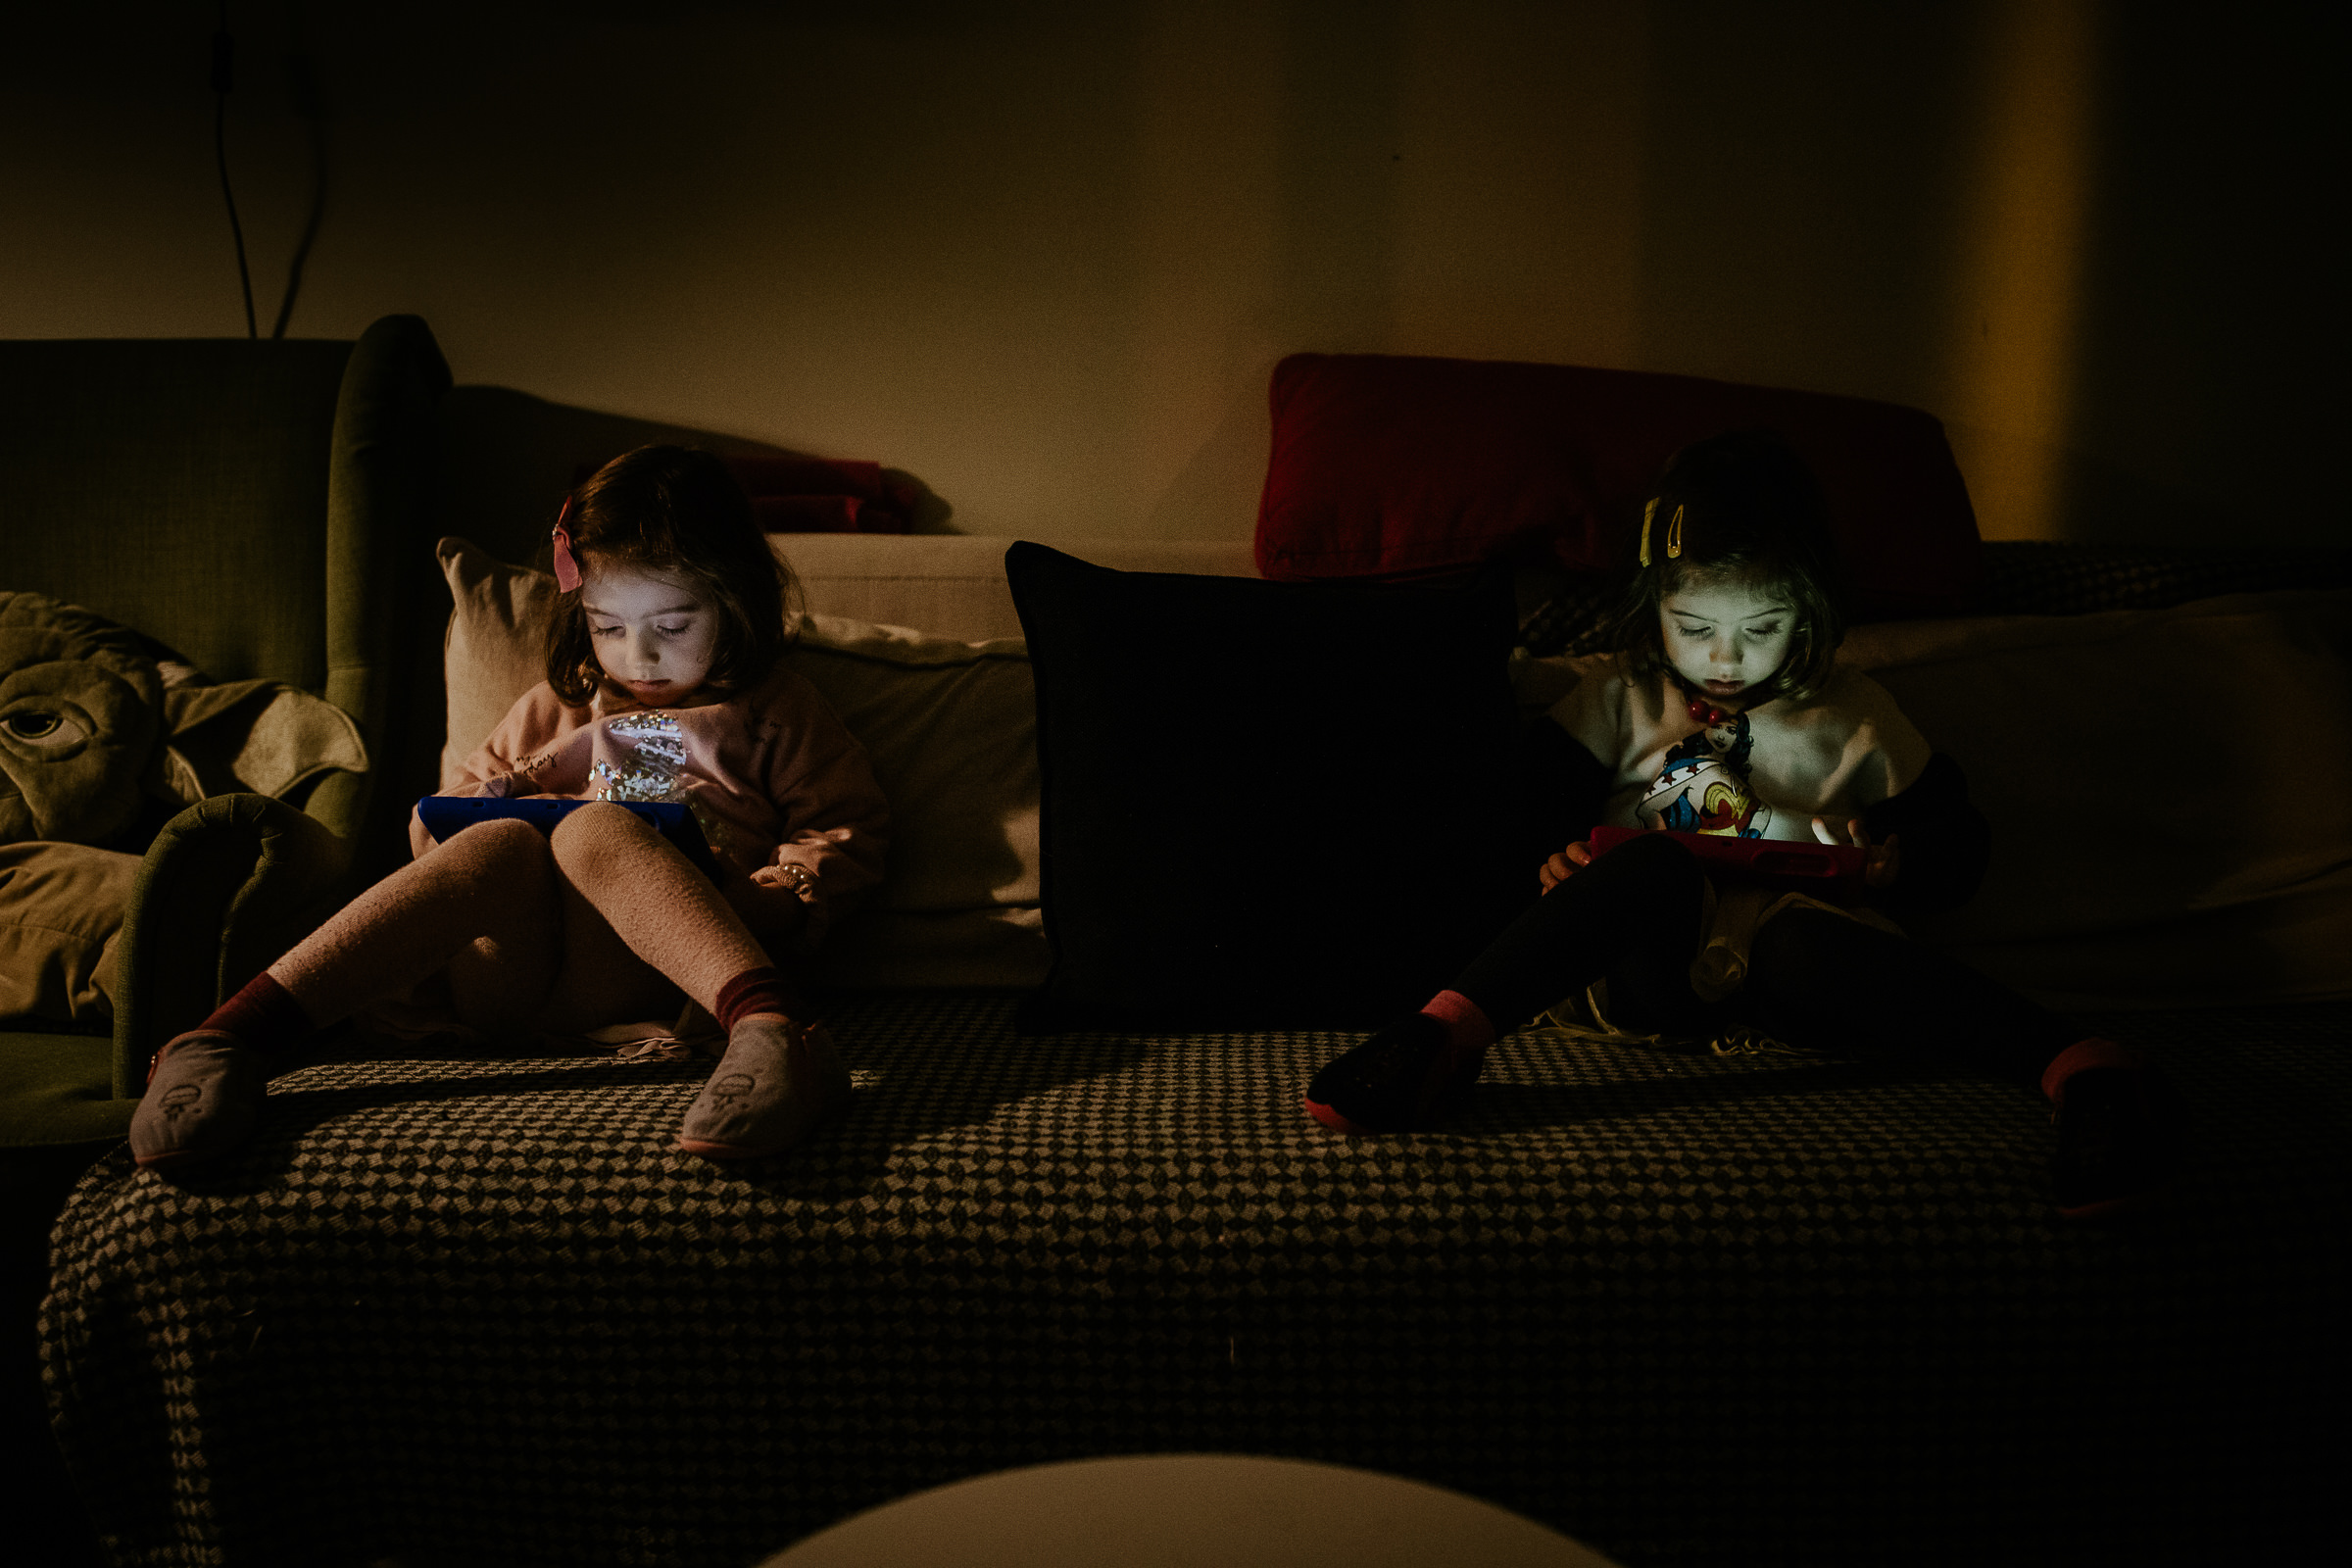 twins playing the mobile phone in the dark